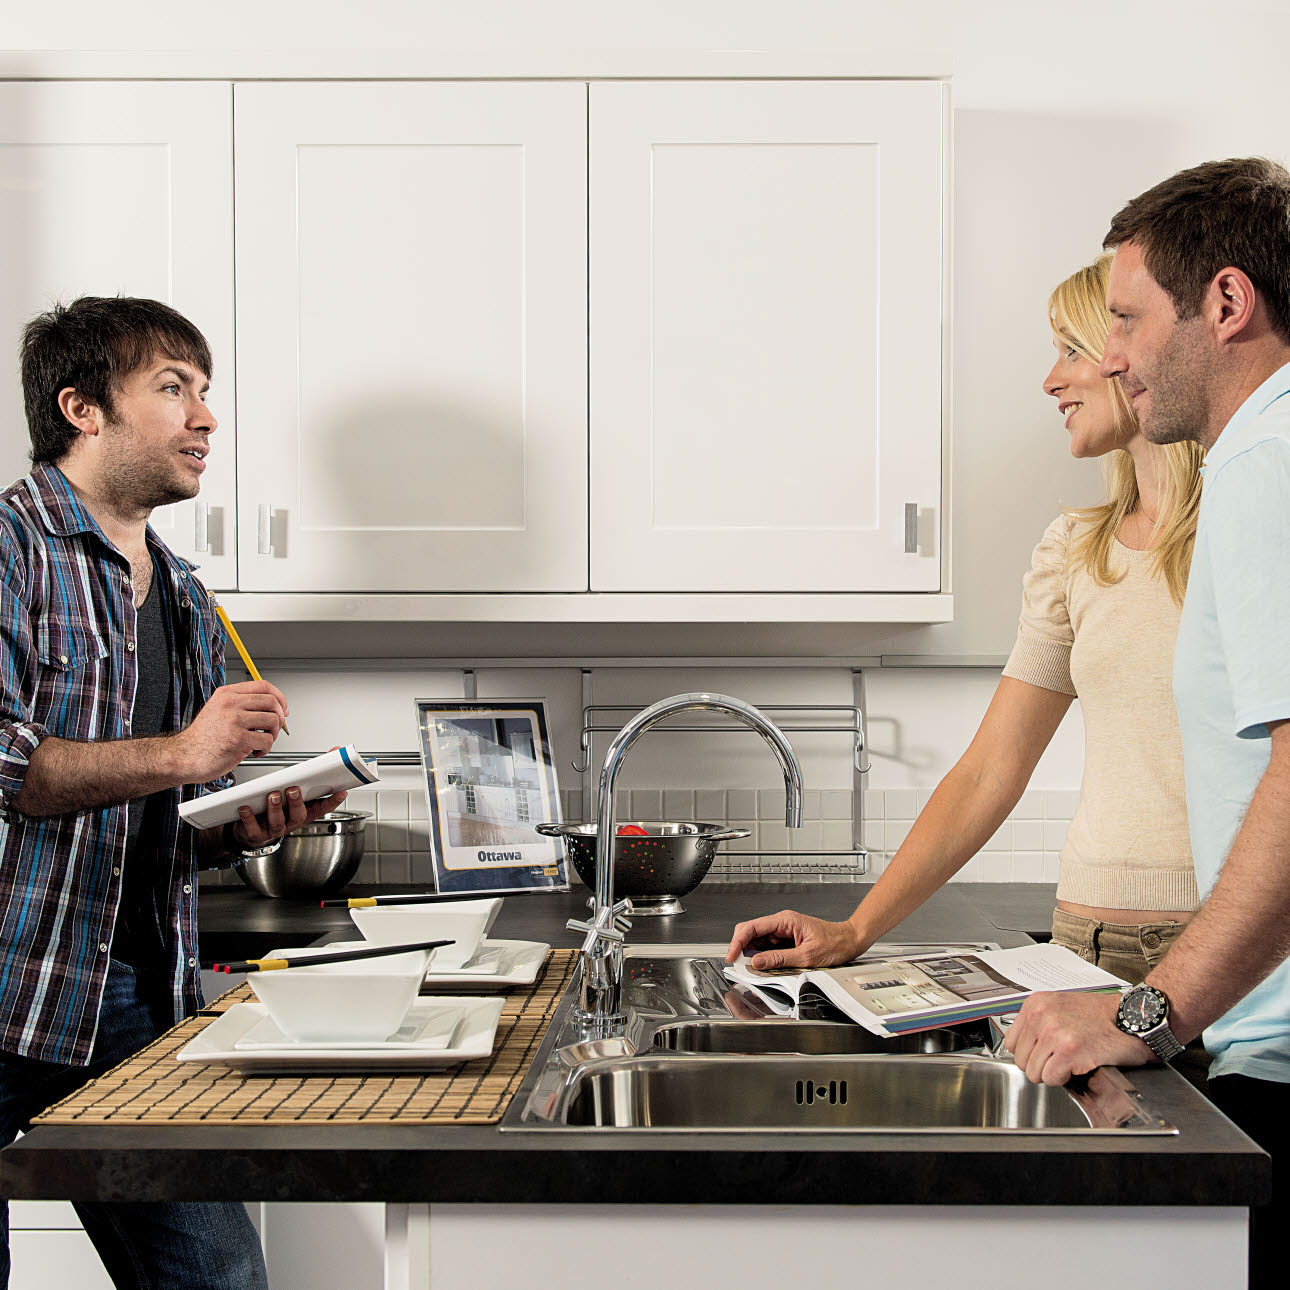 Kitchen designer discussing designs with couple leaning on kitchen island with sink